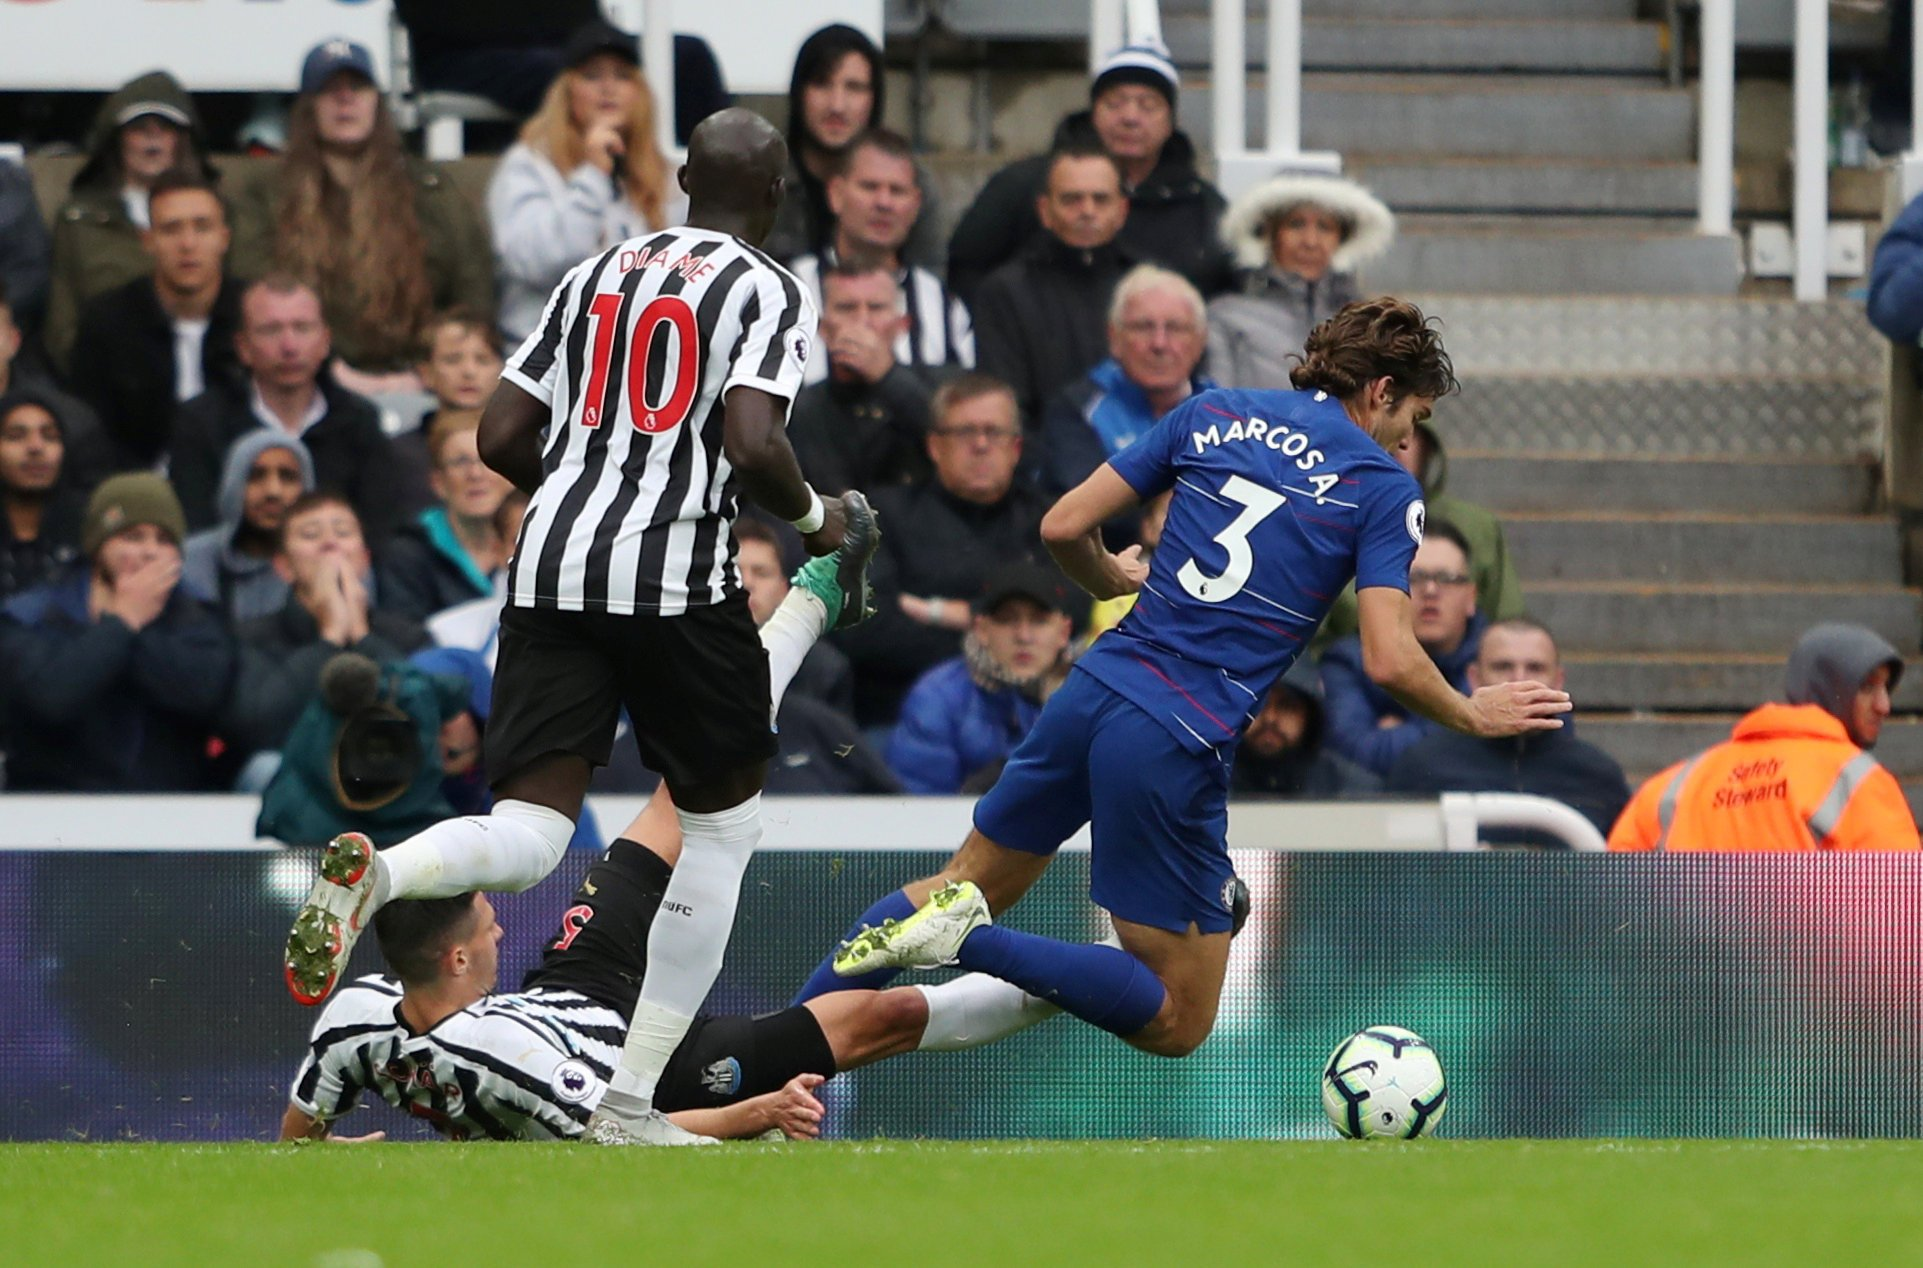 """Soccer Football - Premier League - Newcastle United v Chelsea - St James' Park, Newcastle, Britain - August 26, 2018 Referee Paul Tierney awards Chelsea a penalty after Chelsea's Marcos Alonso goes down under the challenge of Newcastle United's Fabian Schar Action Images via Reuters/Lee Smith EDITORIAL USE ONLY. No use with unauthorized audio, video, data, fixture lists, club/league logos or """"live"""" services. Online in-match use limited to 75 images, no video emulation. No use in betting, games or single club/league/player publications. Please contact your account representative for further details."""